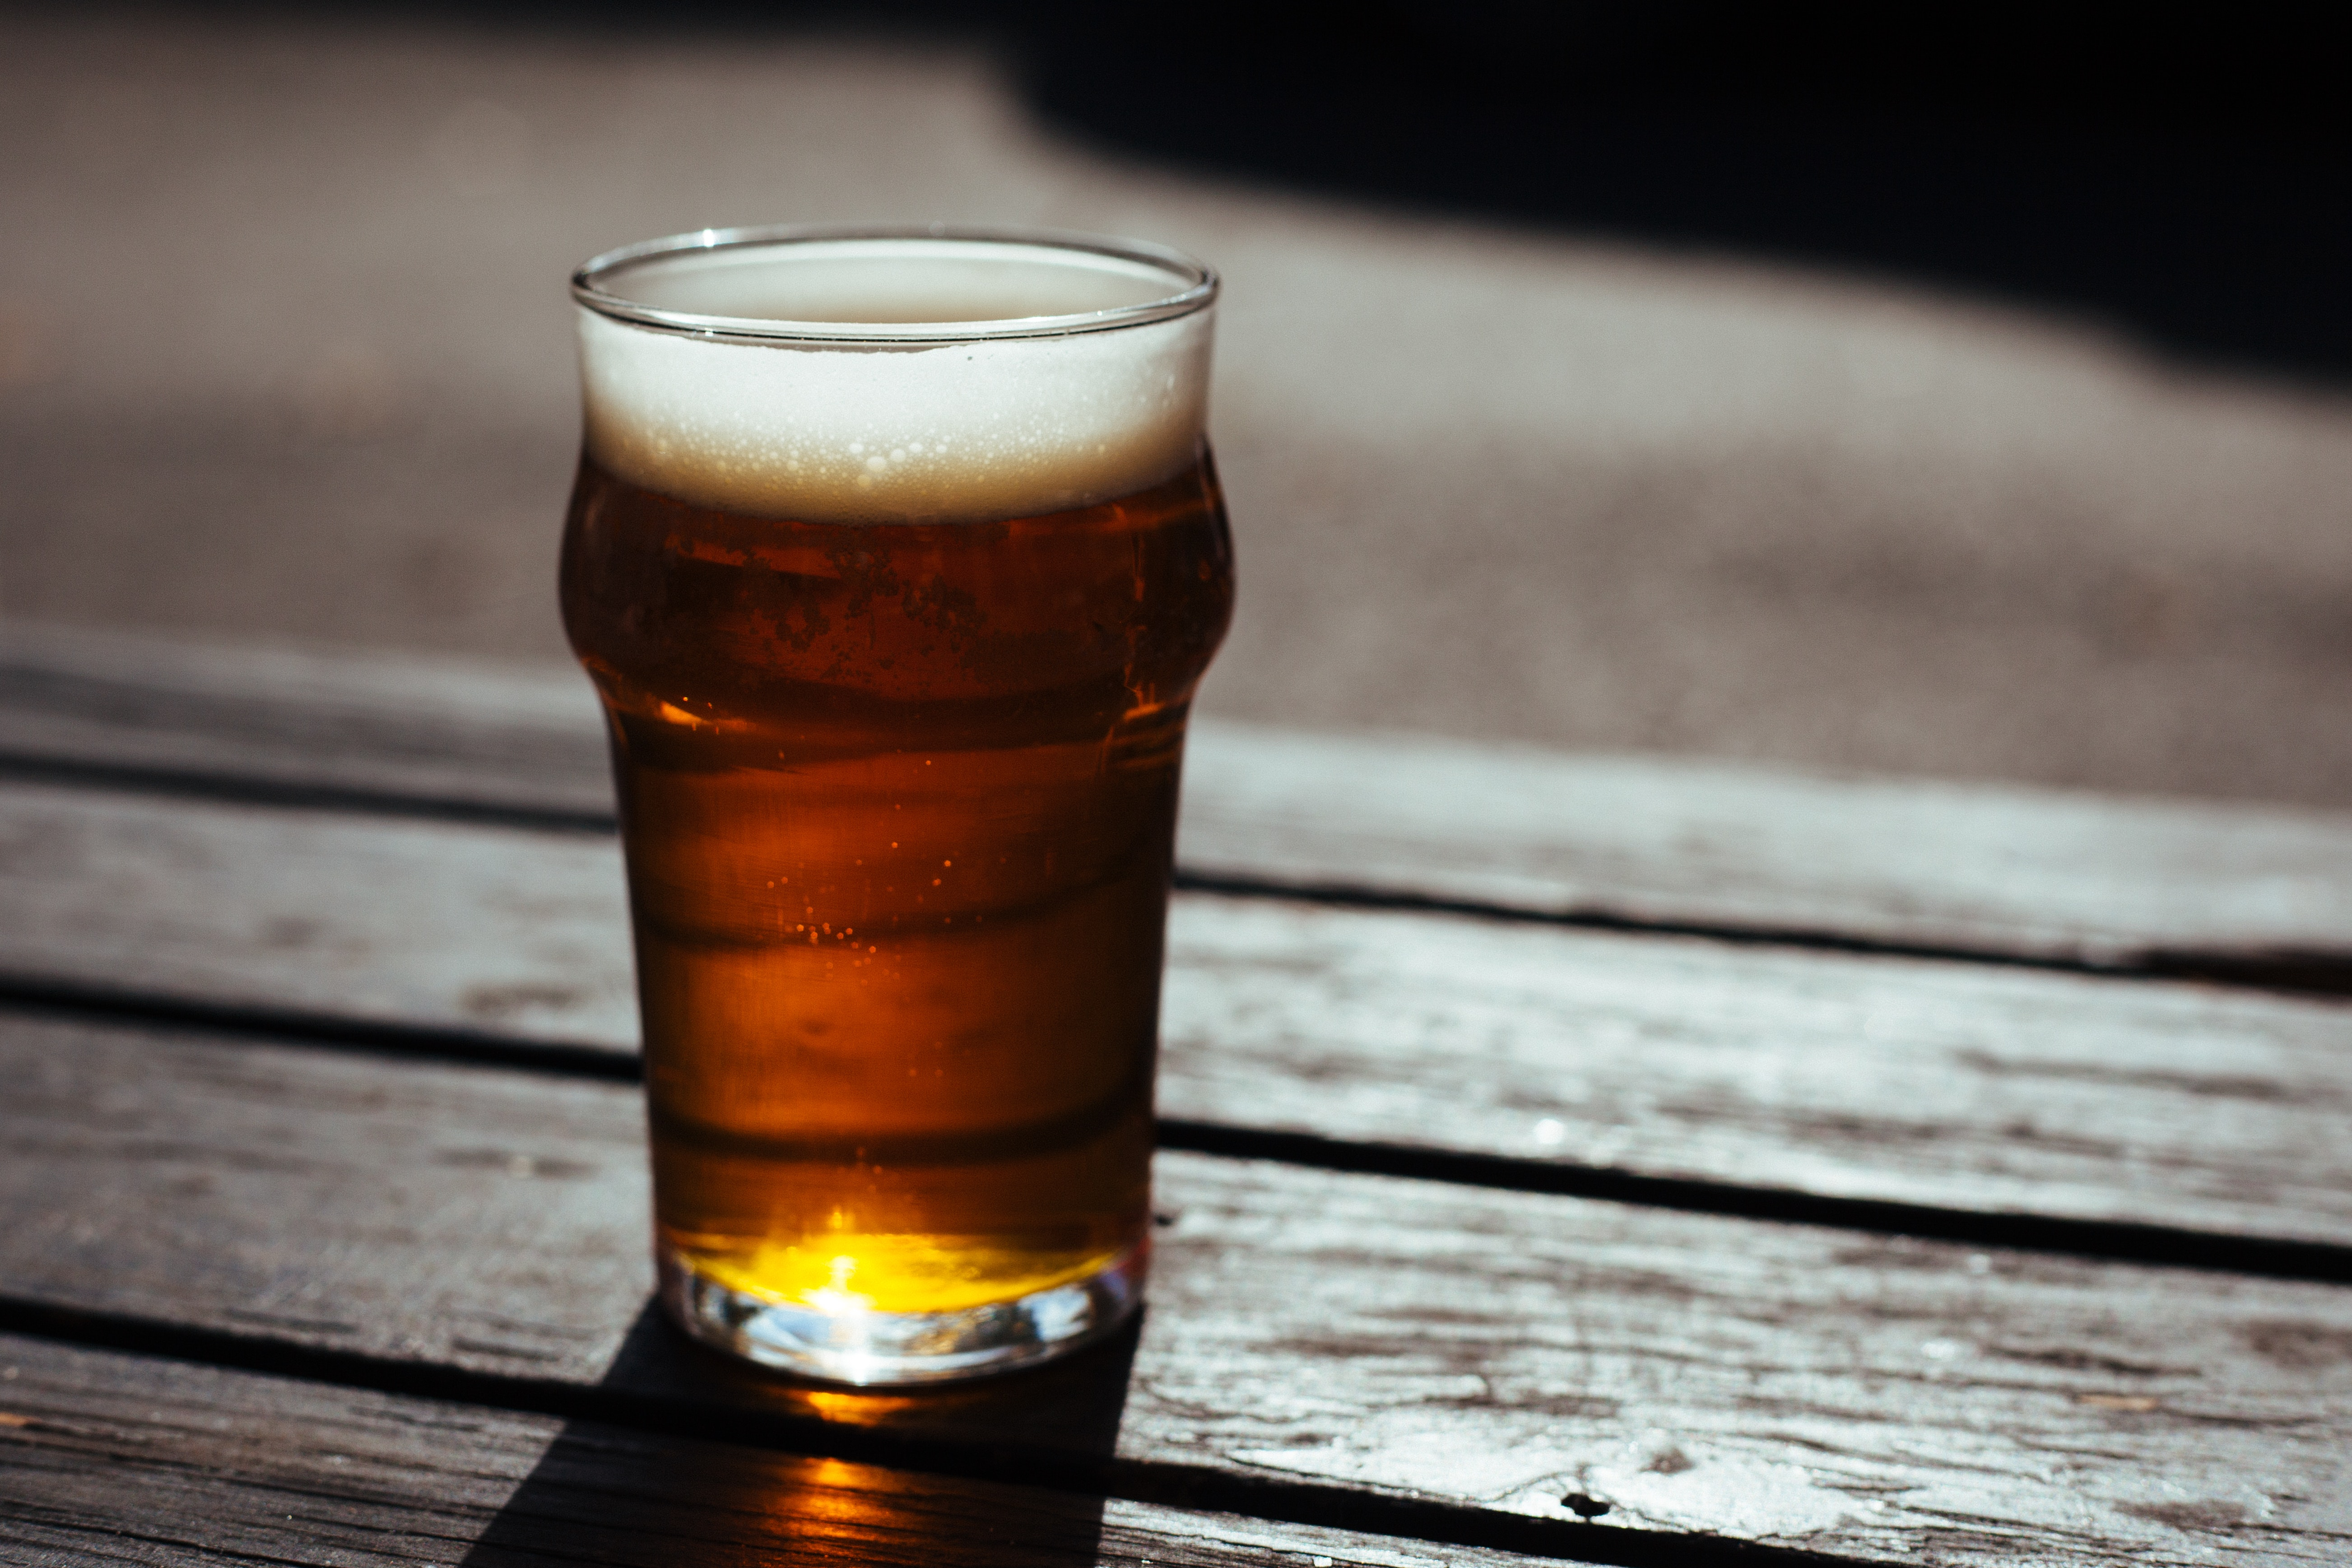 Glass of beer on table